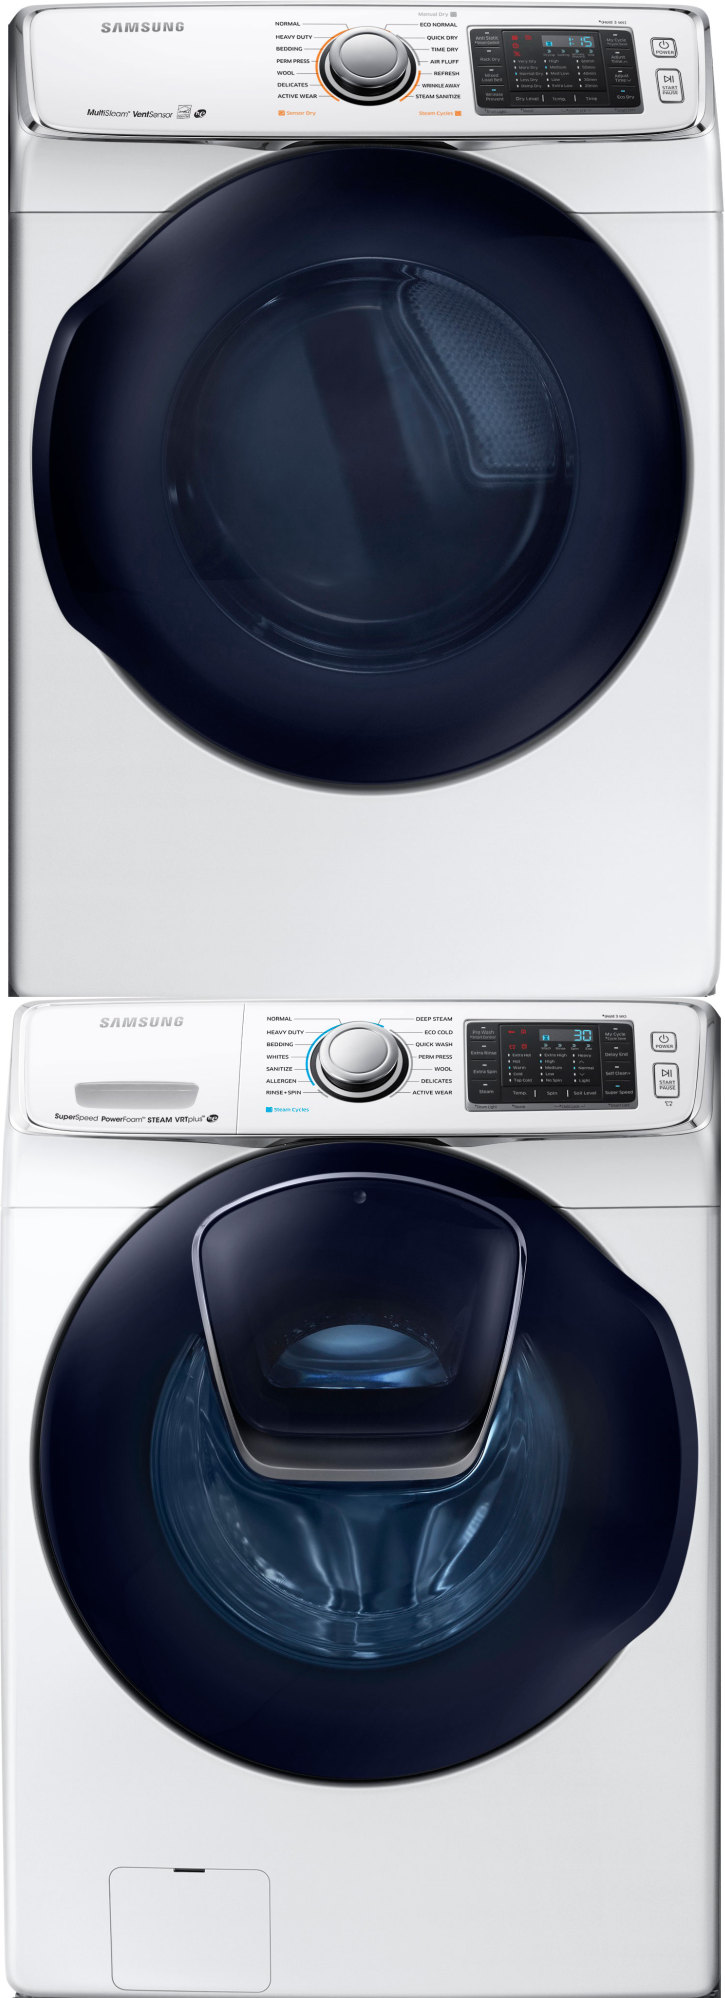 samsung wf50k7500aw front load washer u0026 dv50k7500gw gas dryer wstacking kit